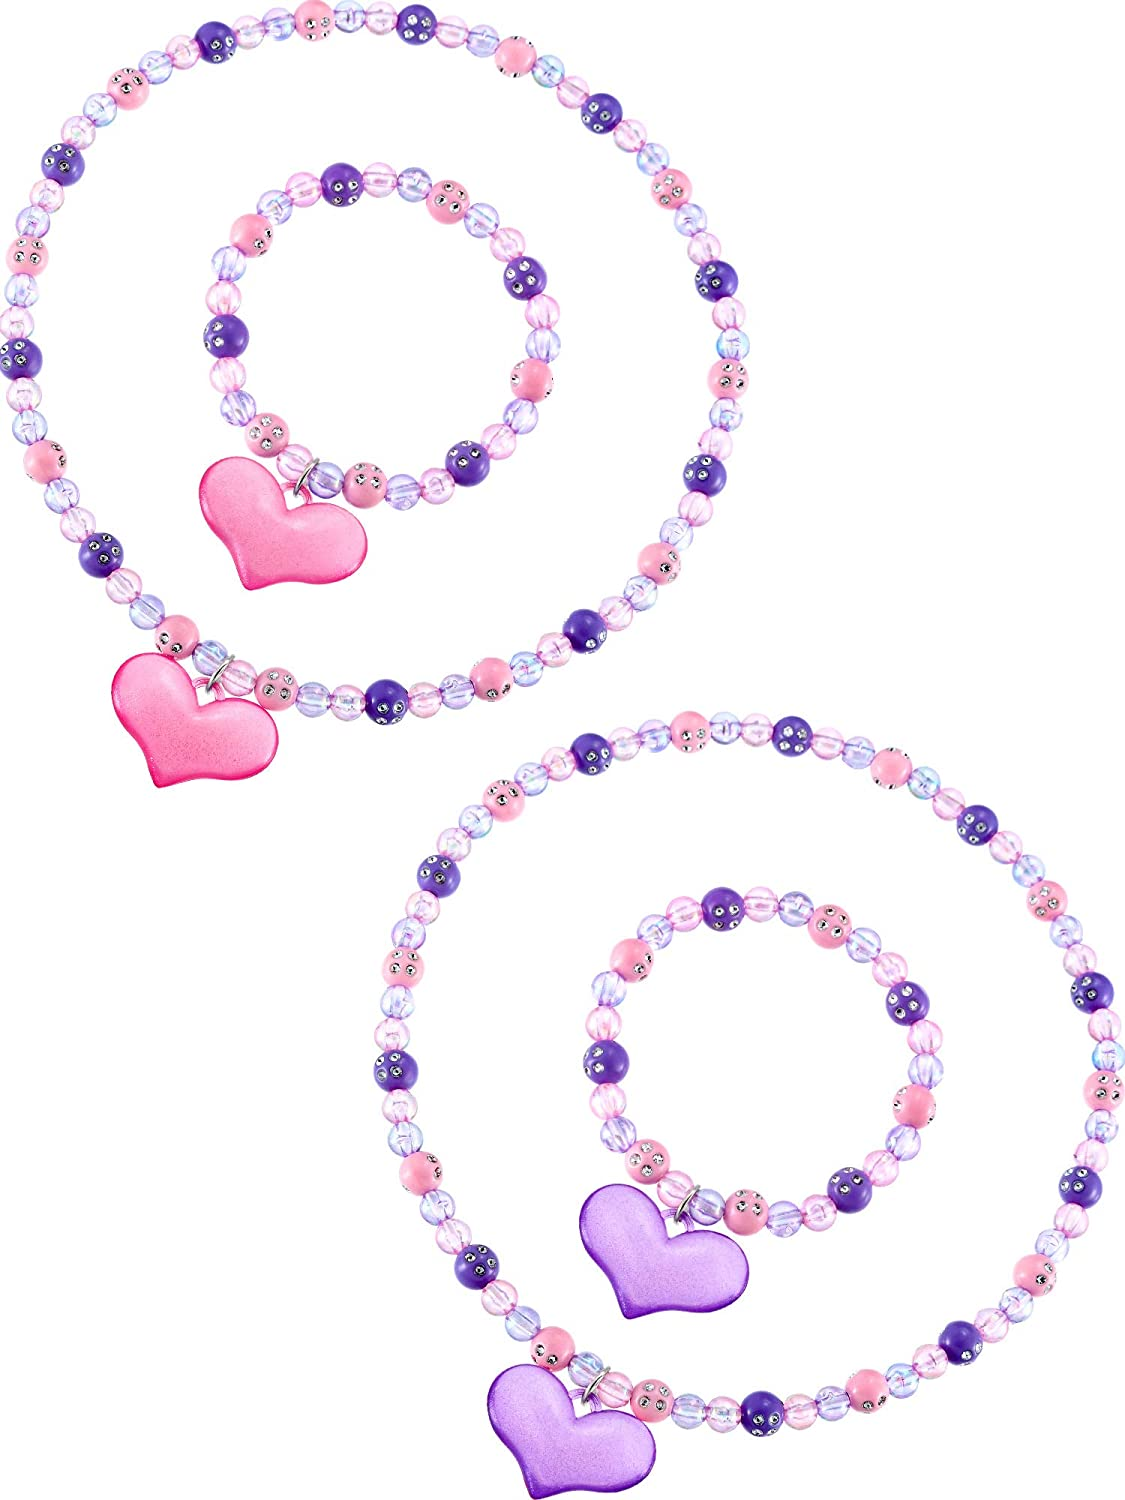 Zhanmai Necklace Bracelet Jewelry Set Boys Girls Lovely Princess Heart Shape Beads Necklace Set for Dress Up Jewelry Party (Sweet Style): Toys & Games